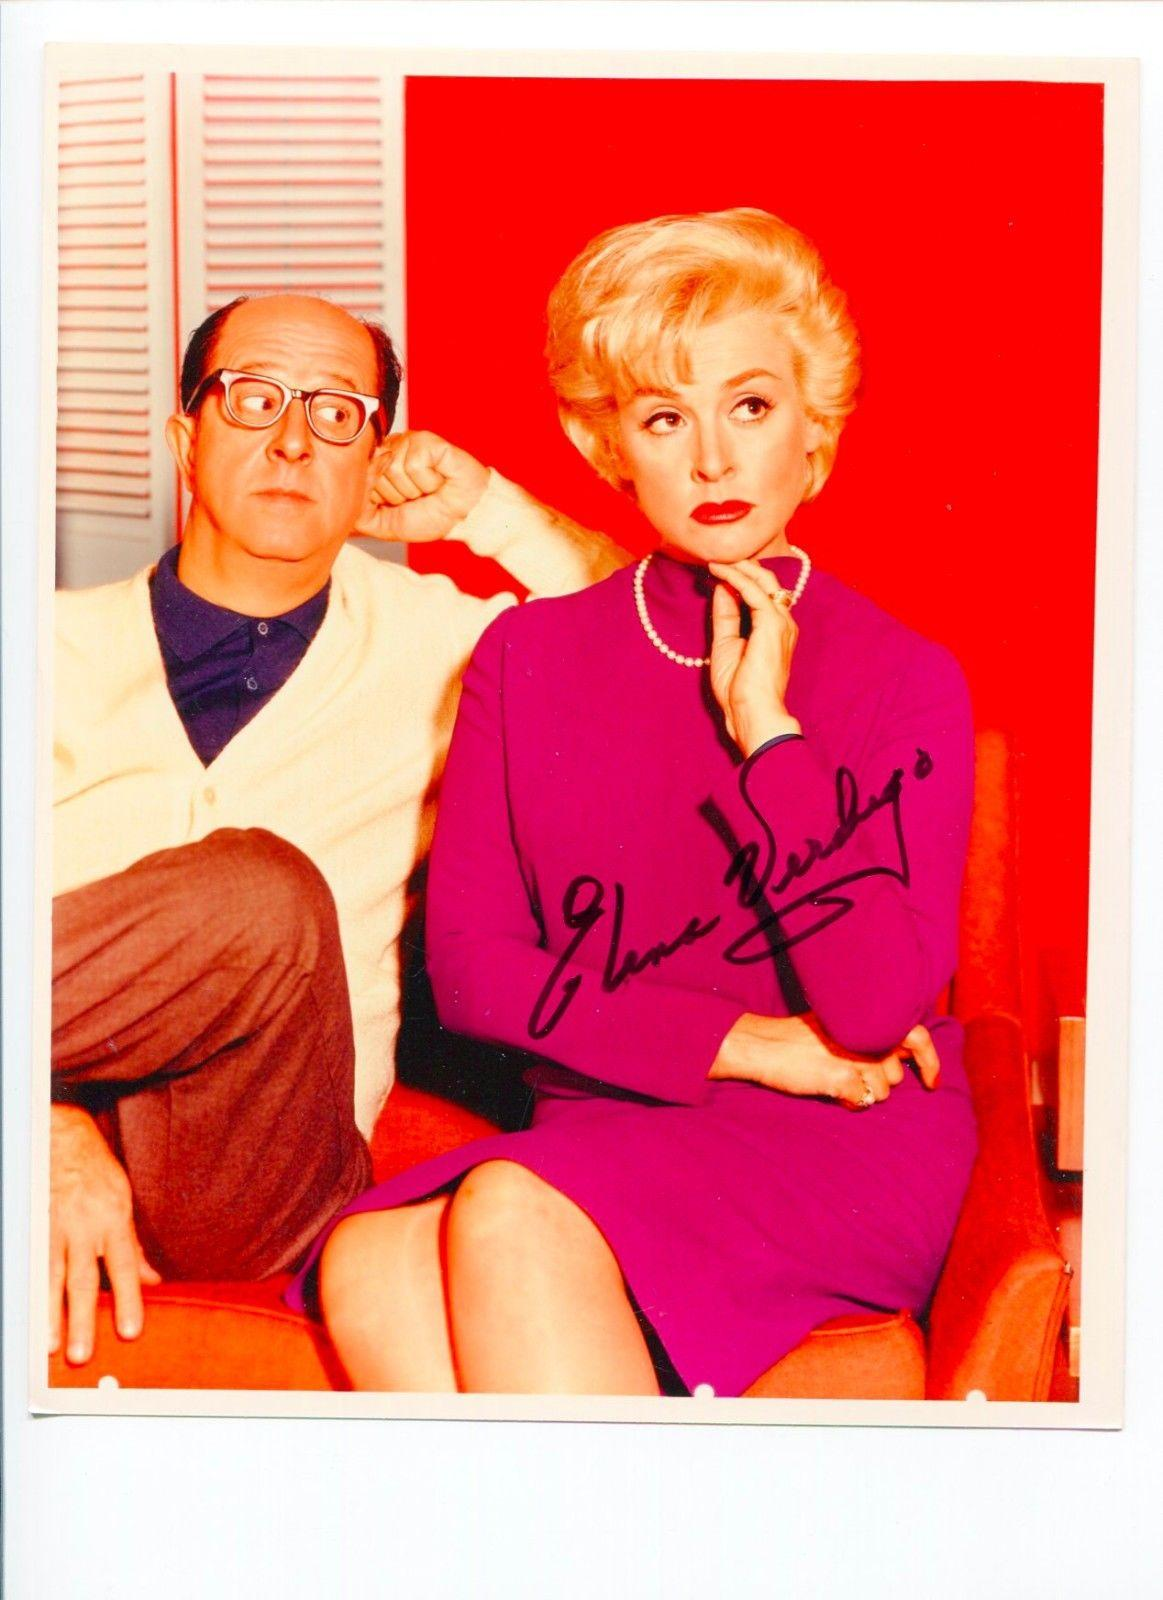 Elena Verdugo House of Frankenstein Marcus Welby MD Meet Millie Signed Photo